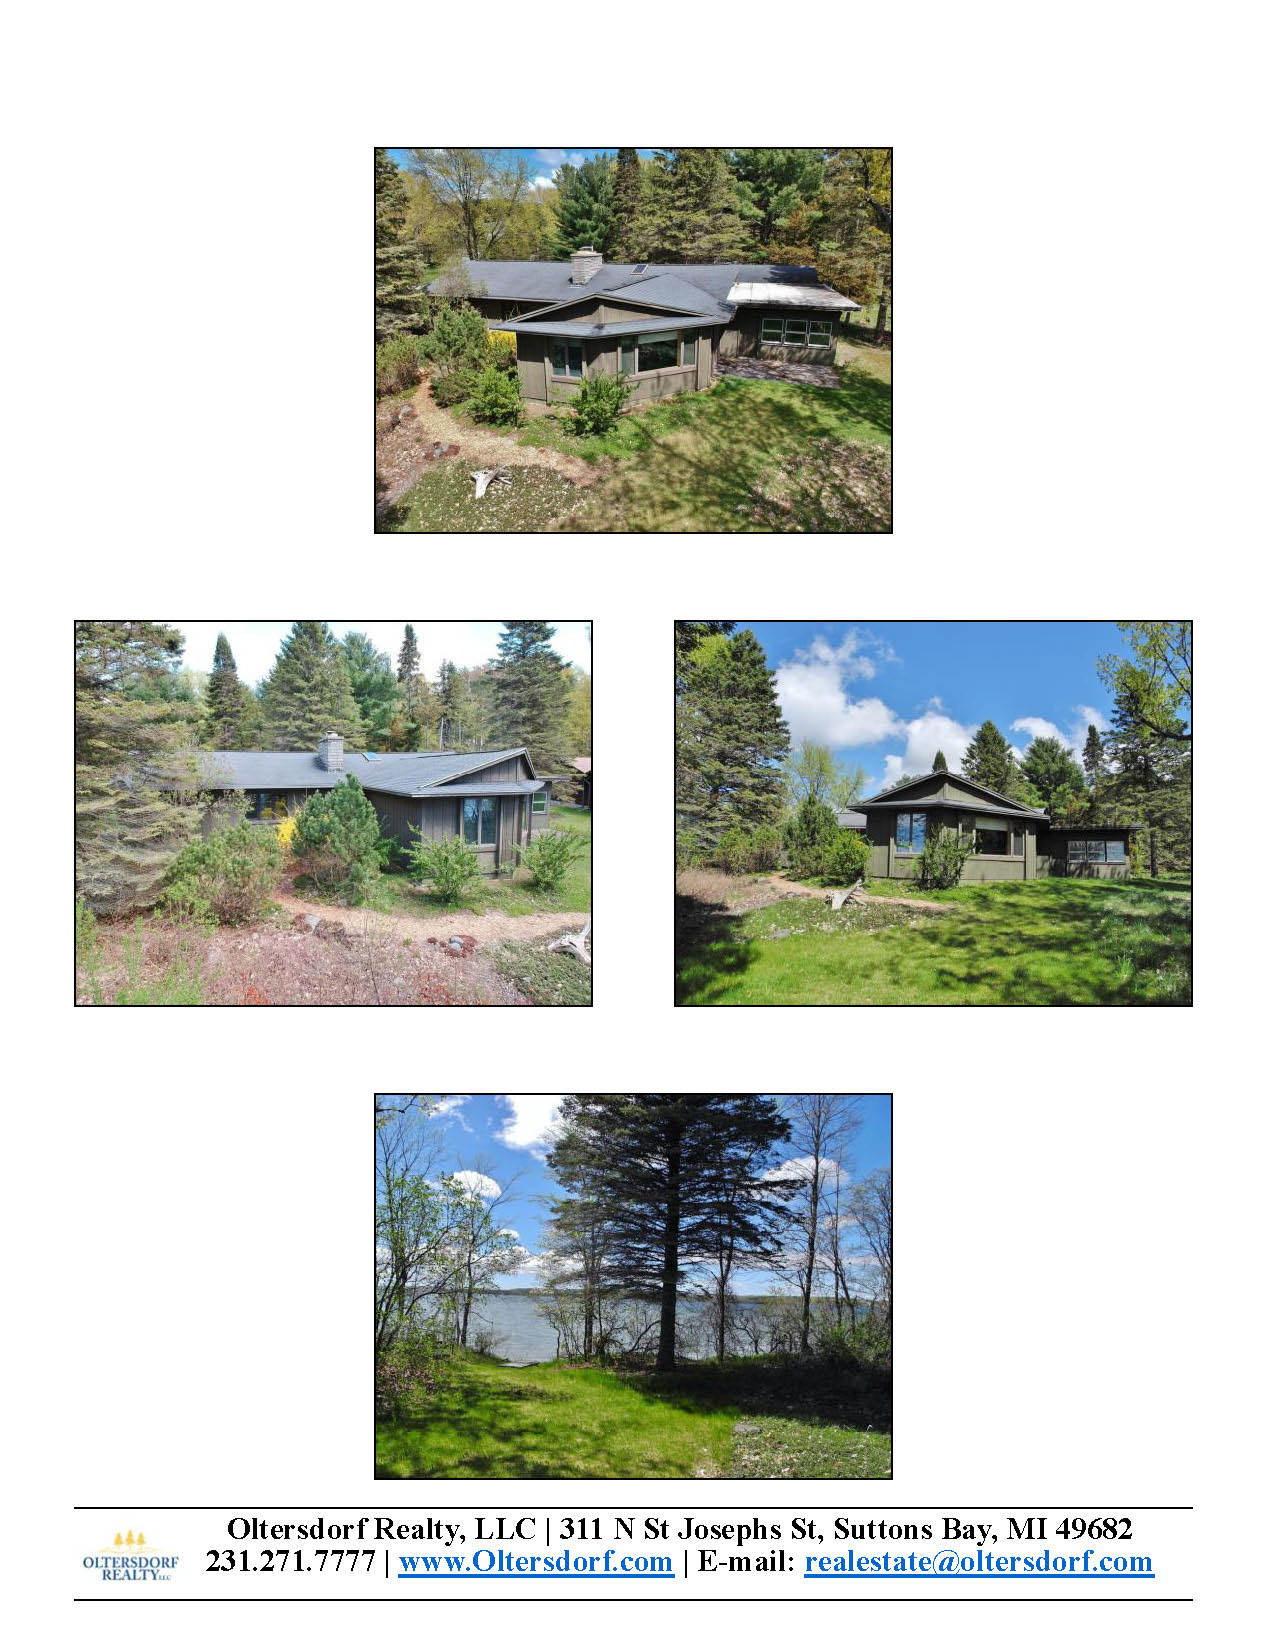 8164 S Lakeview Road, Traverse City, MI – Ranch Home & 100' on Lake Leelanau - For Sale by Oltersdorf Realty LLC - Marketing Packet (3).jpg